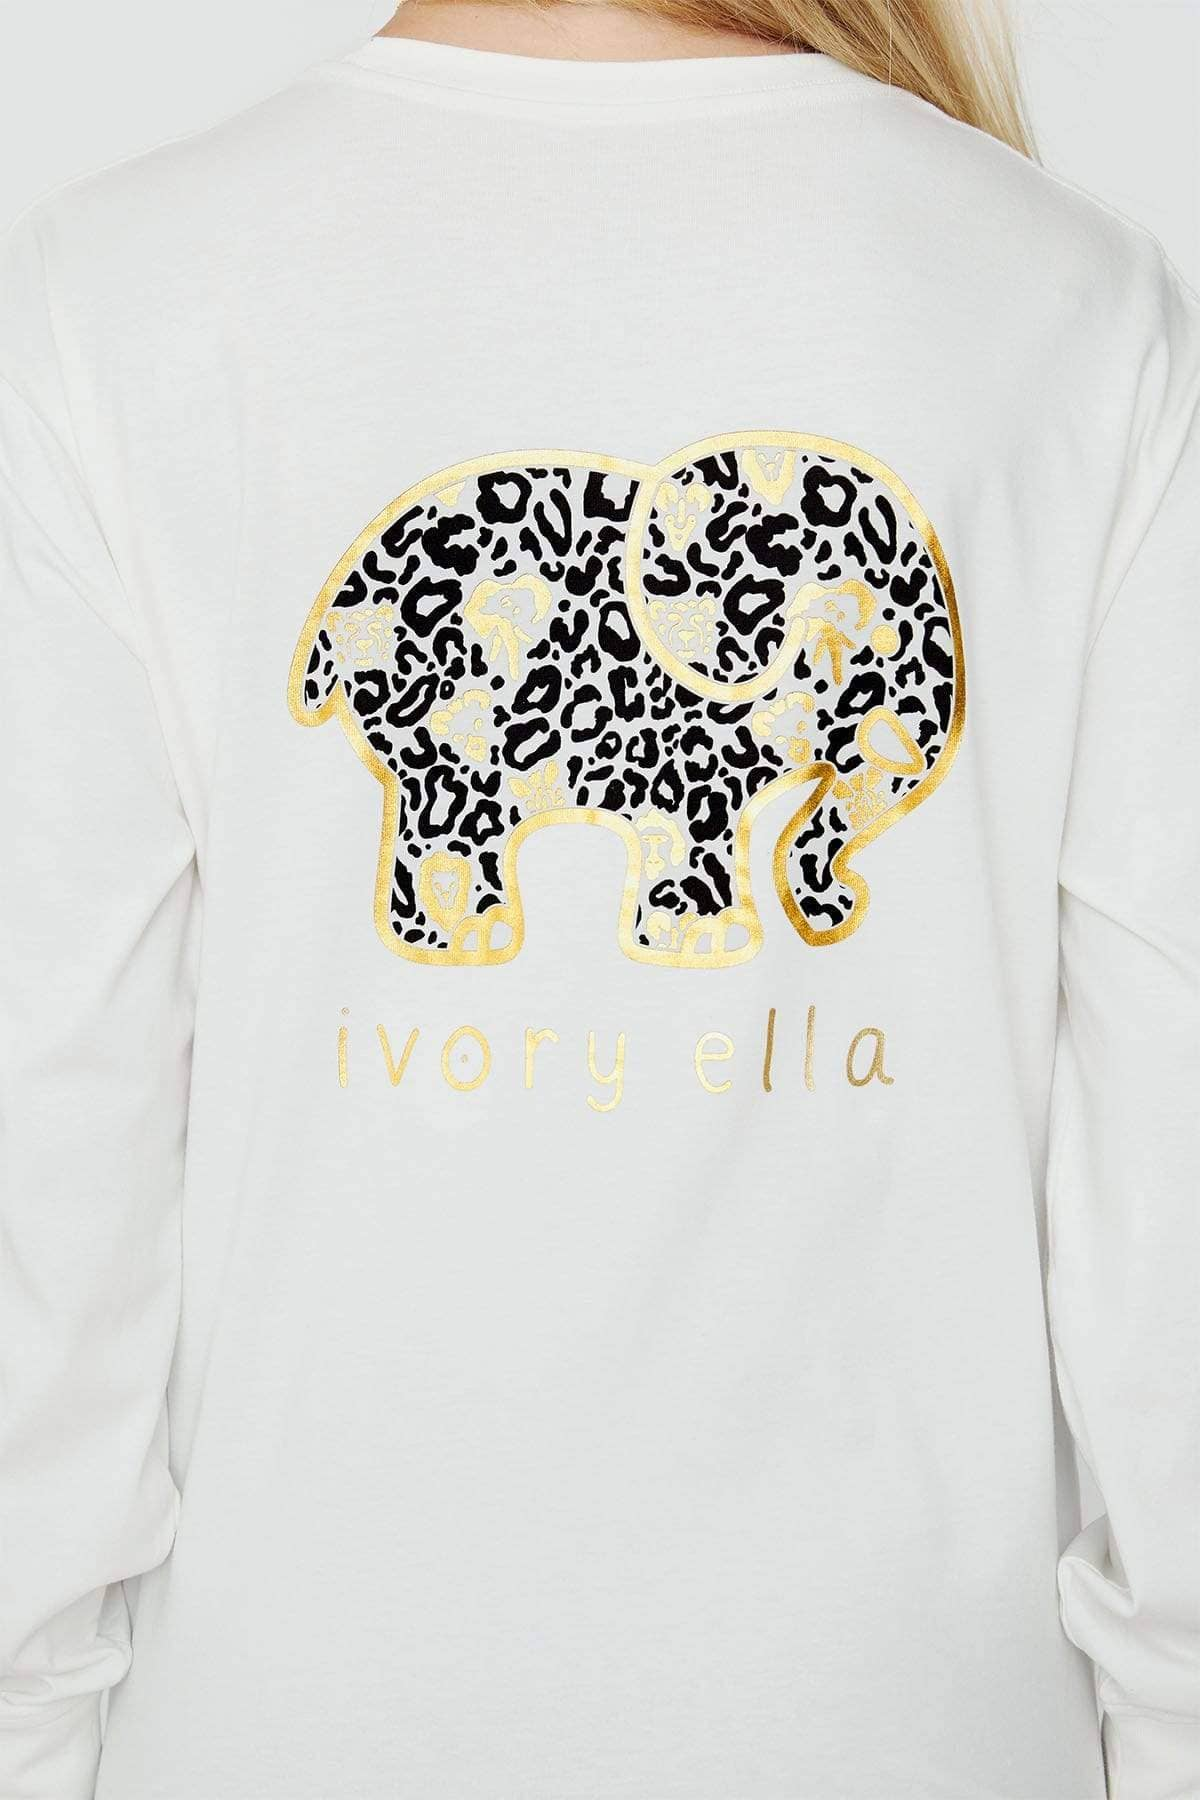 Ivory Ella Women's Long Sleeve Shirts Soft White Animal Print Classic Tee